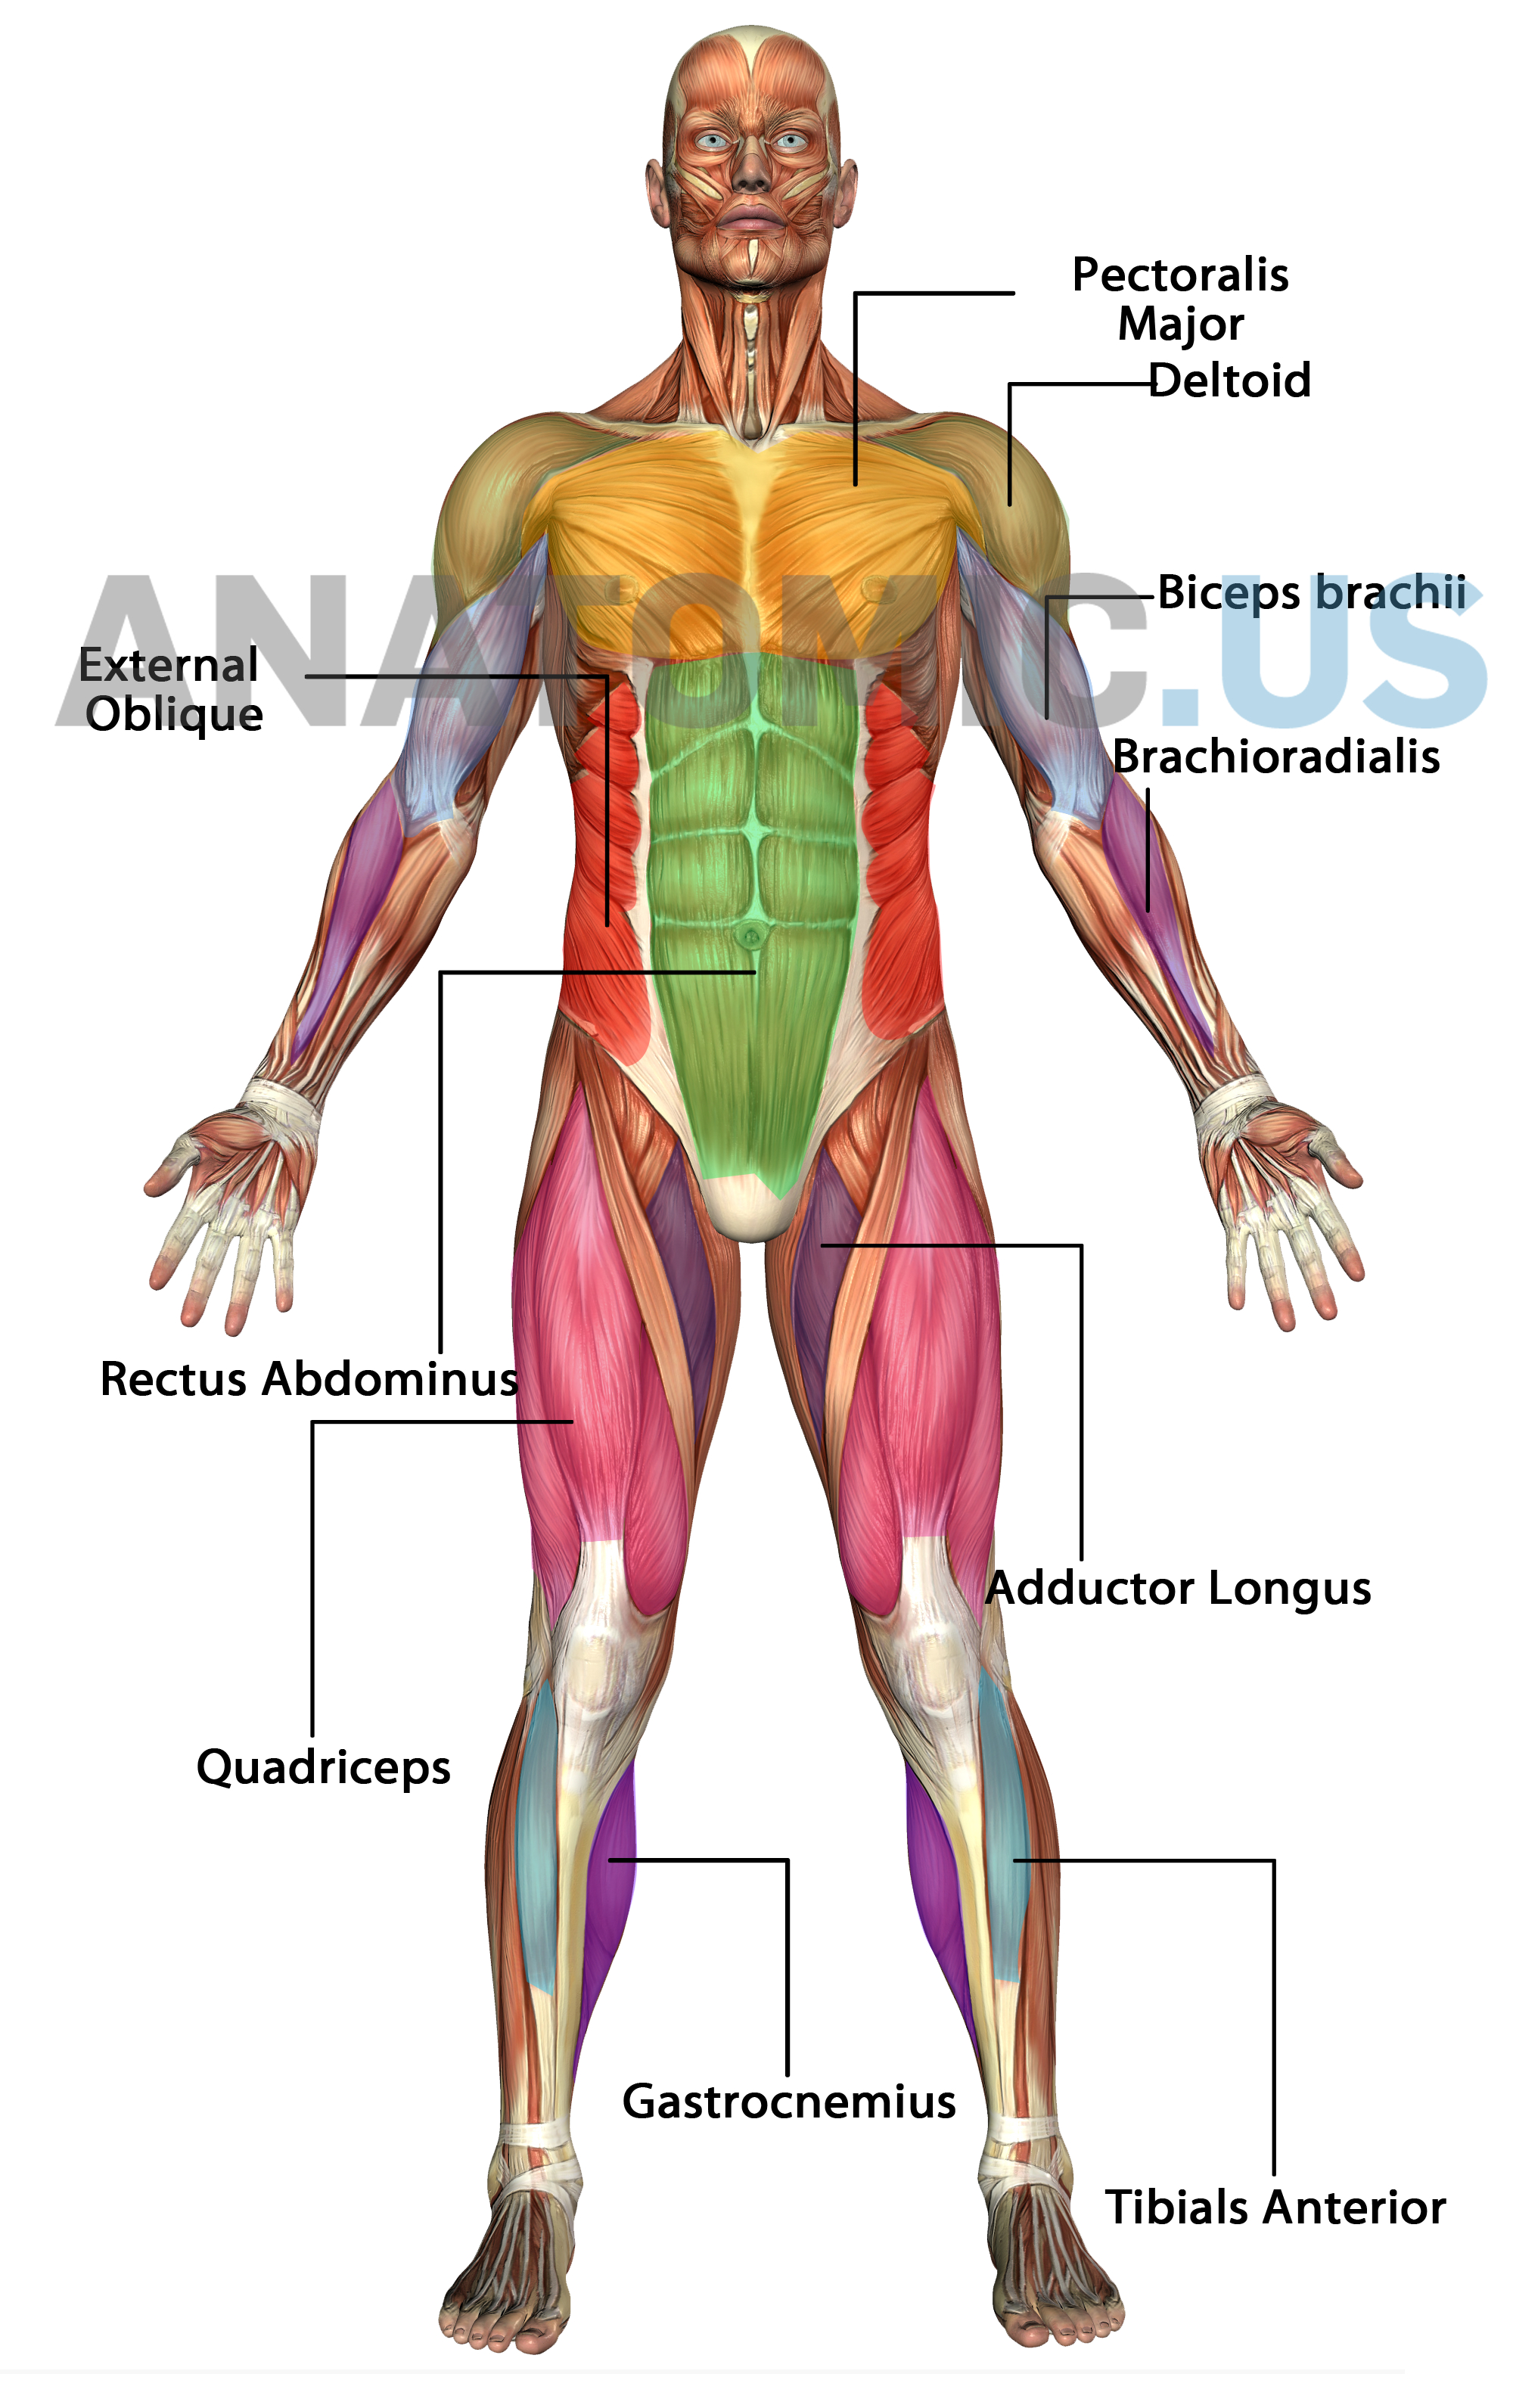 Human Muscle Diagram Human Body Muscles Diagram Labeled Beautiful Muscular System Anatomy